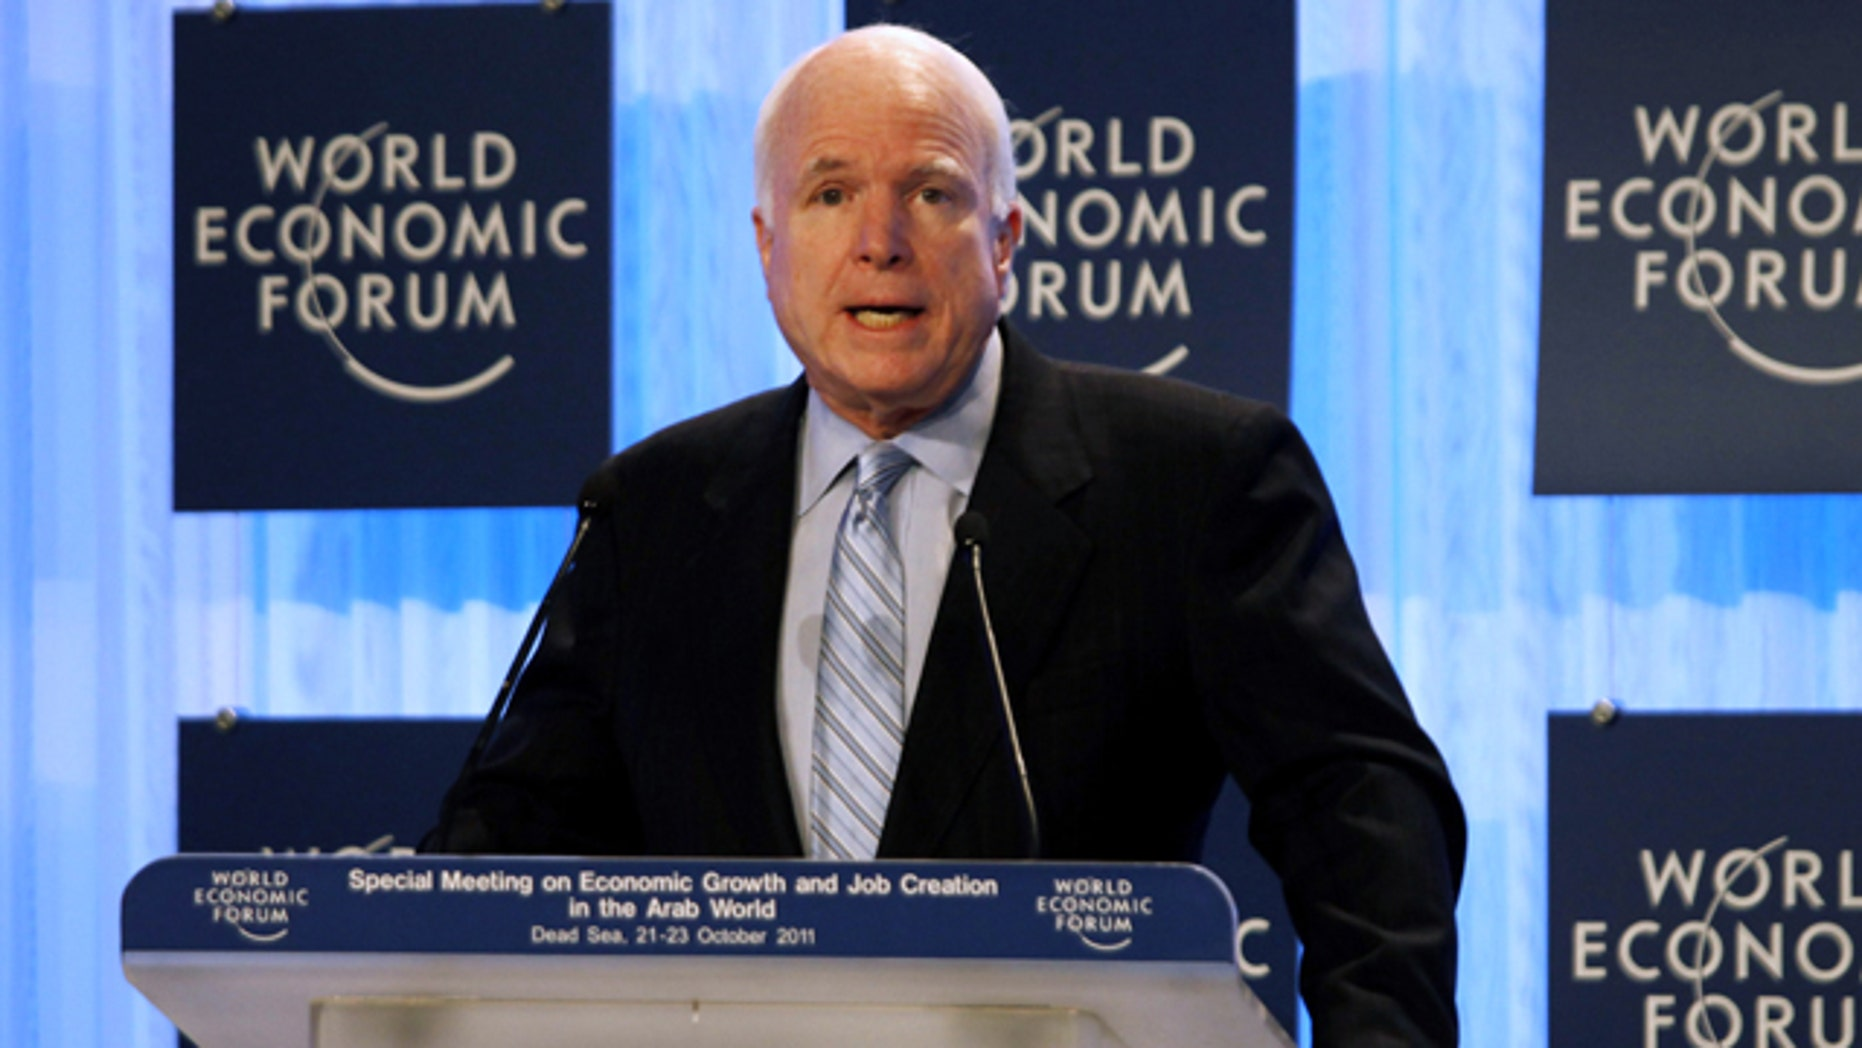 Oct. 23, 2011: U.S. Sen. John McCain speaks during the World Economic Forum meeting in the King Hussein Bin Talal convention center at the Dead Sea, 34 miles southeast of Amman, Jordan.